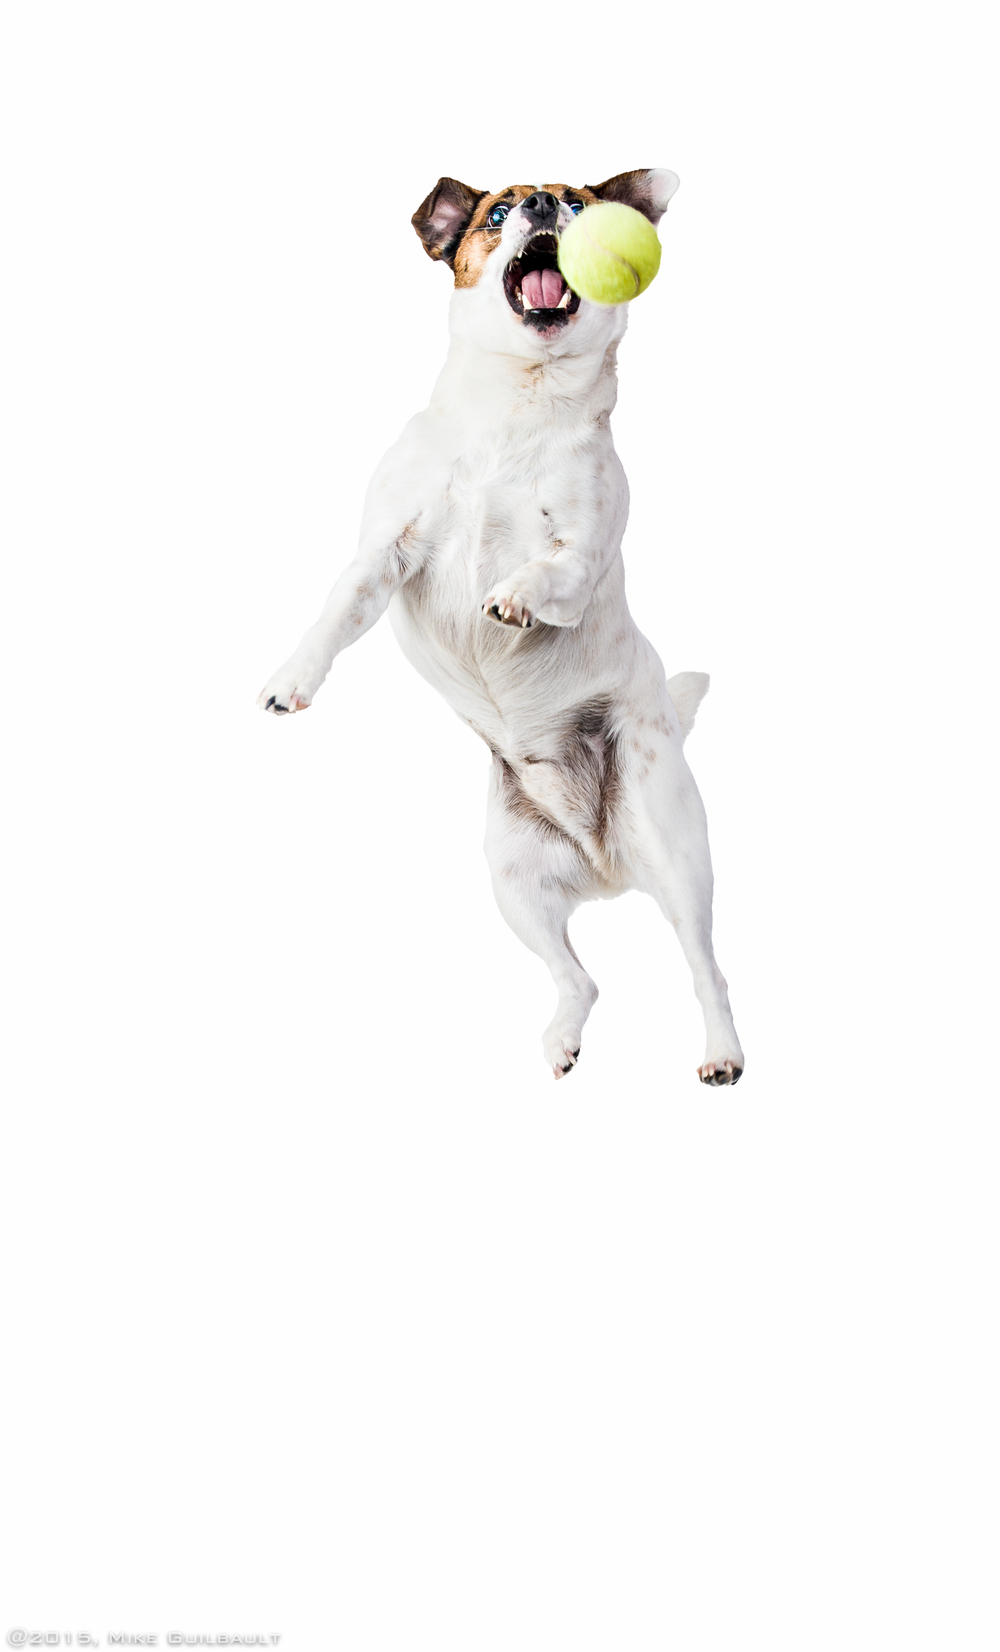 Who Says White Dogs Can't Jump!